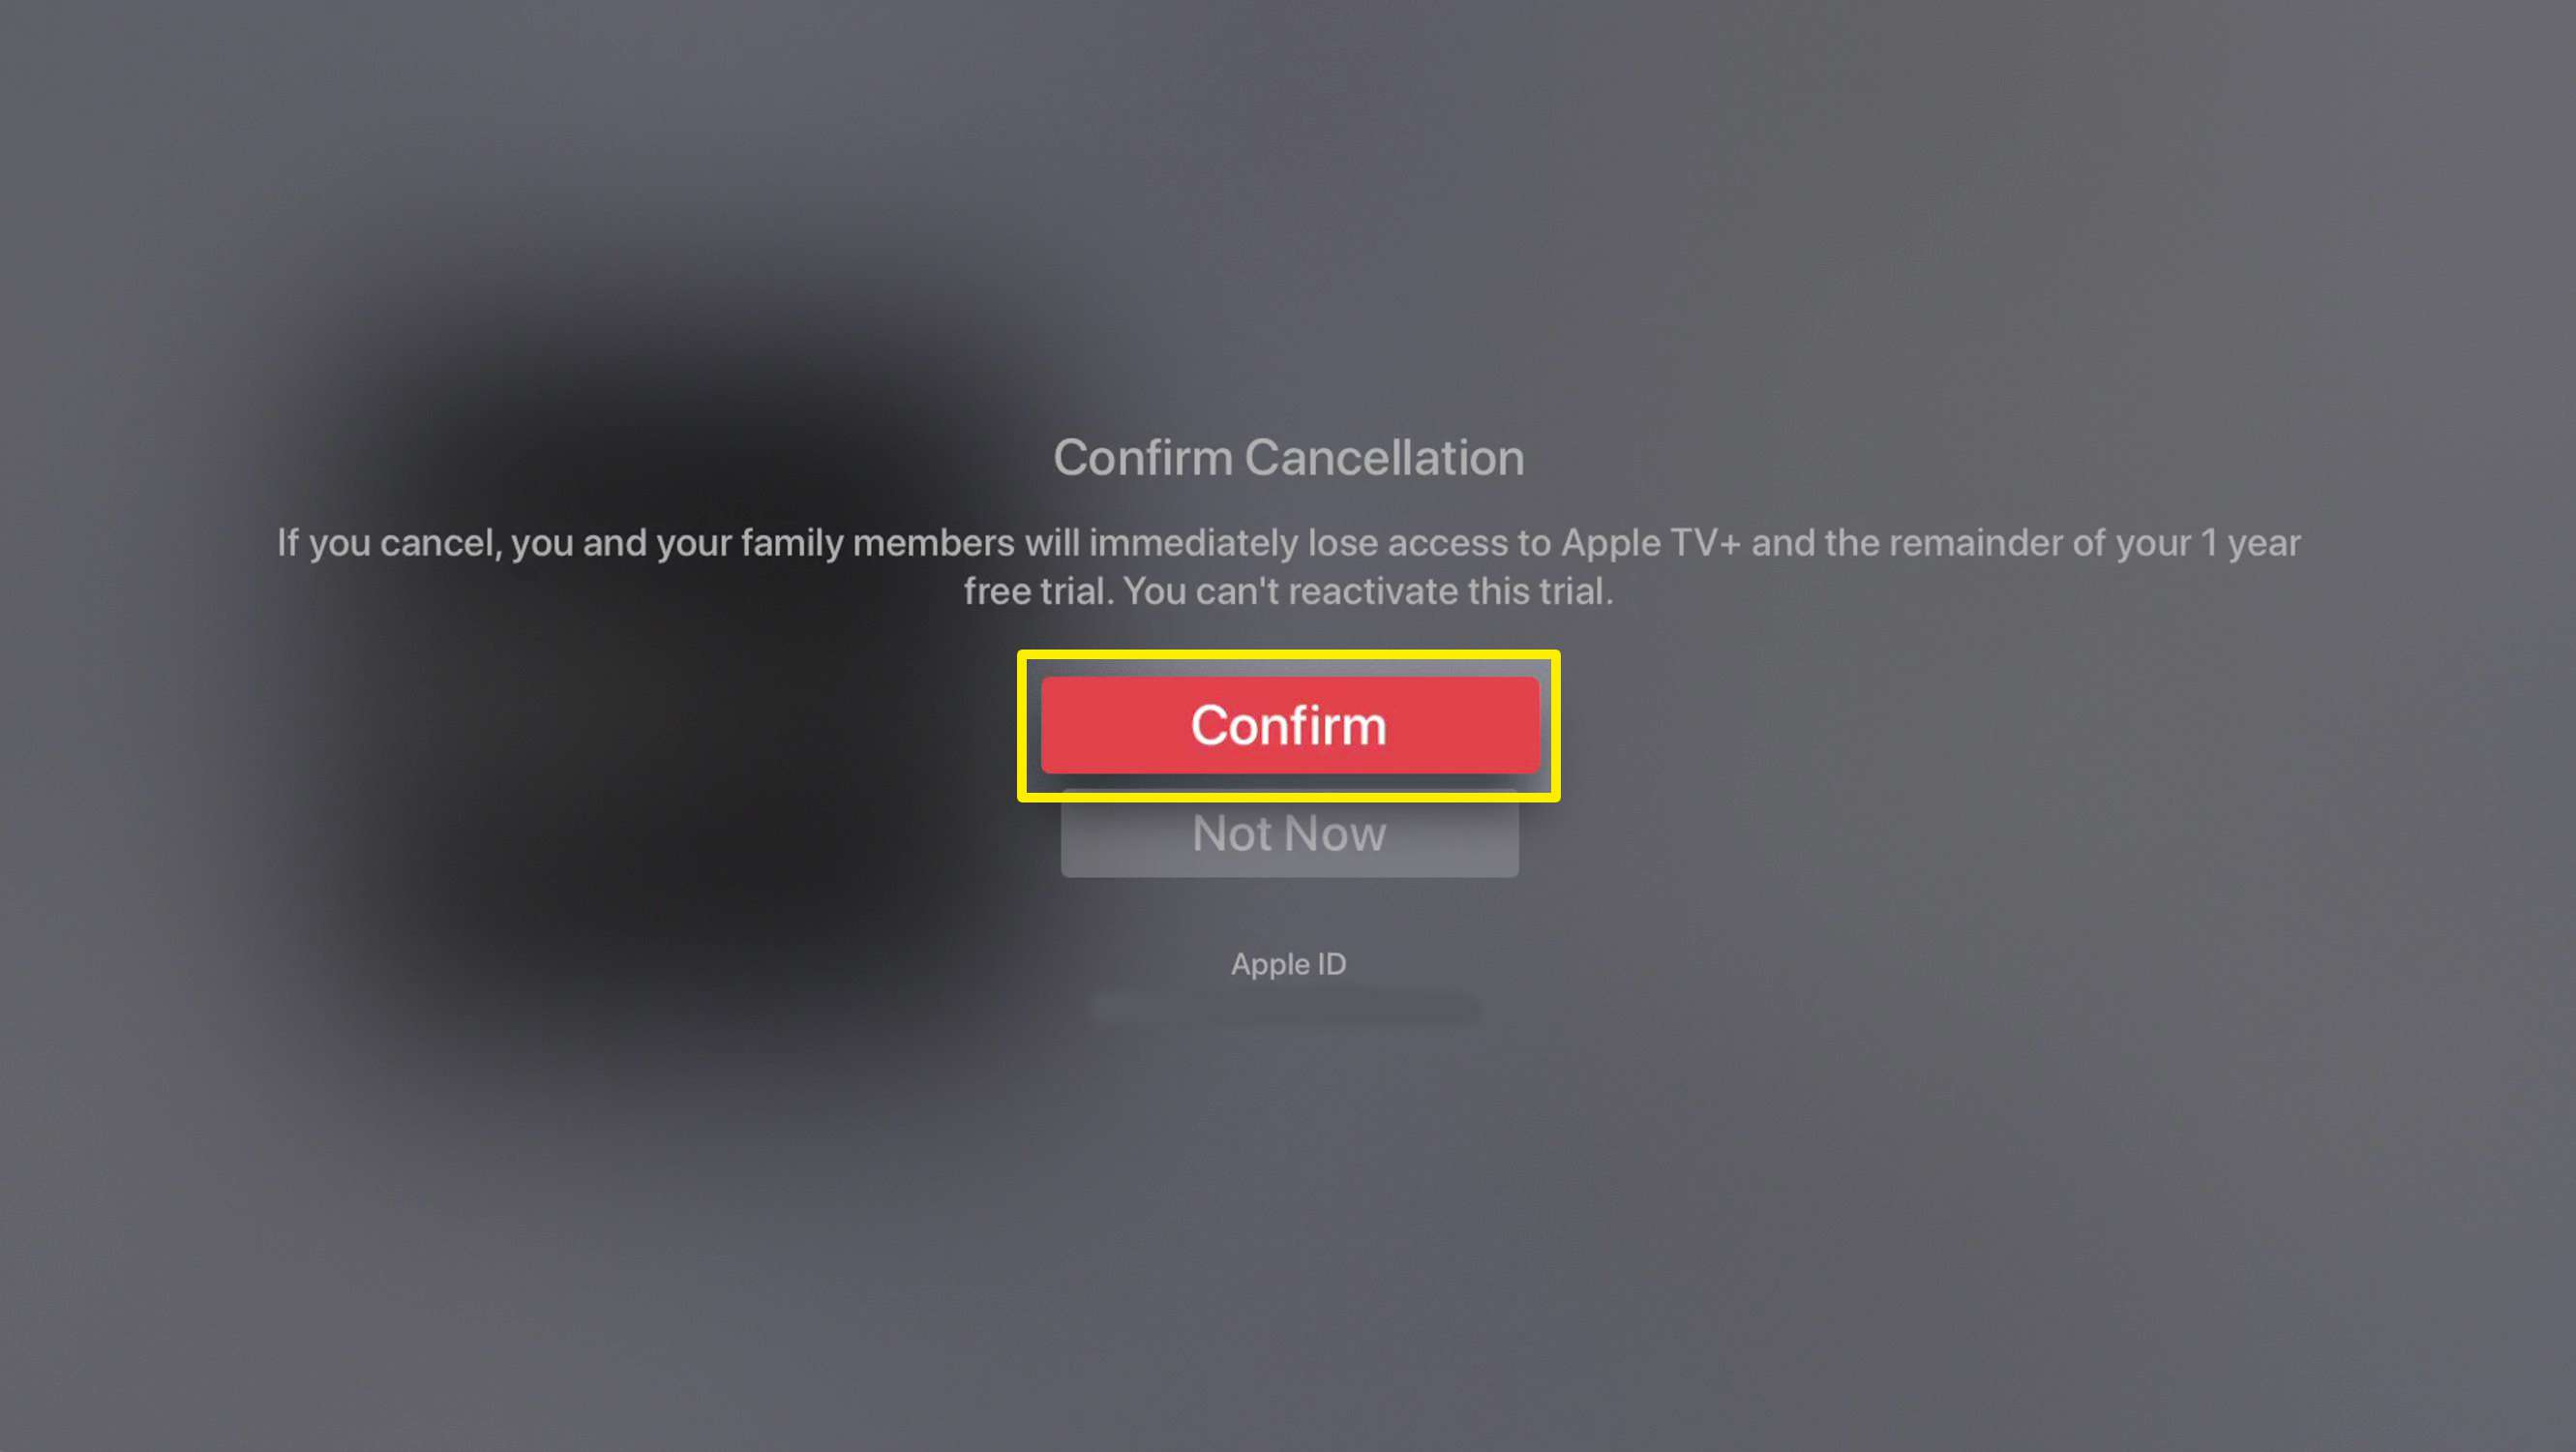 Screenshot of confirming the cancellation of an Apple TV subscription